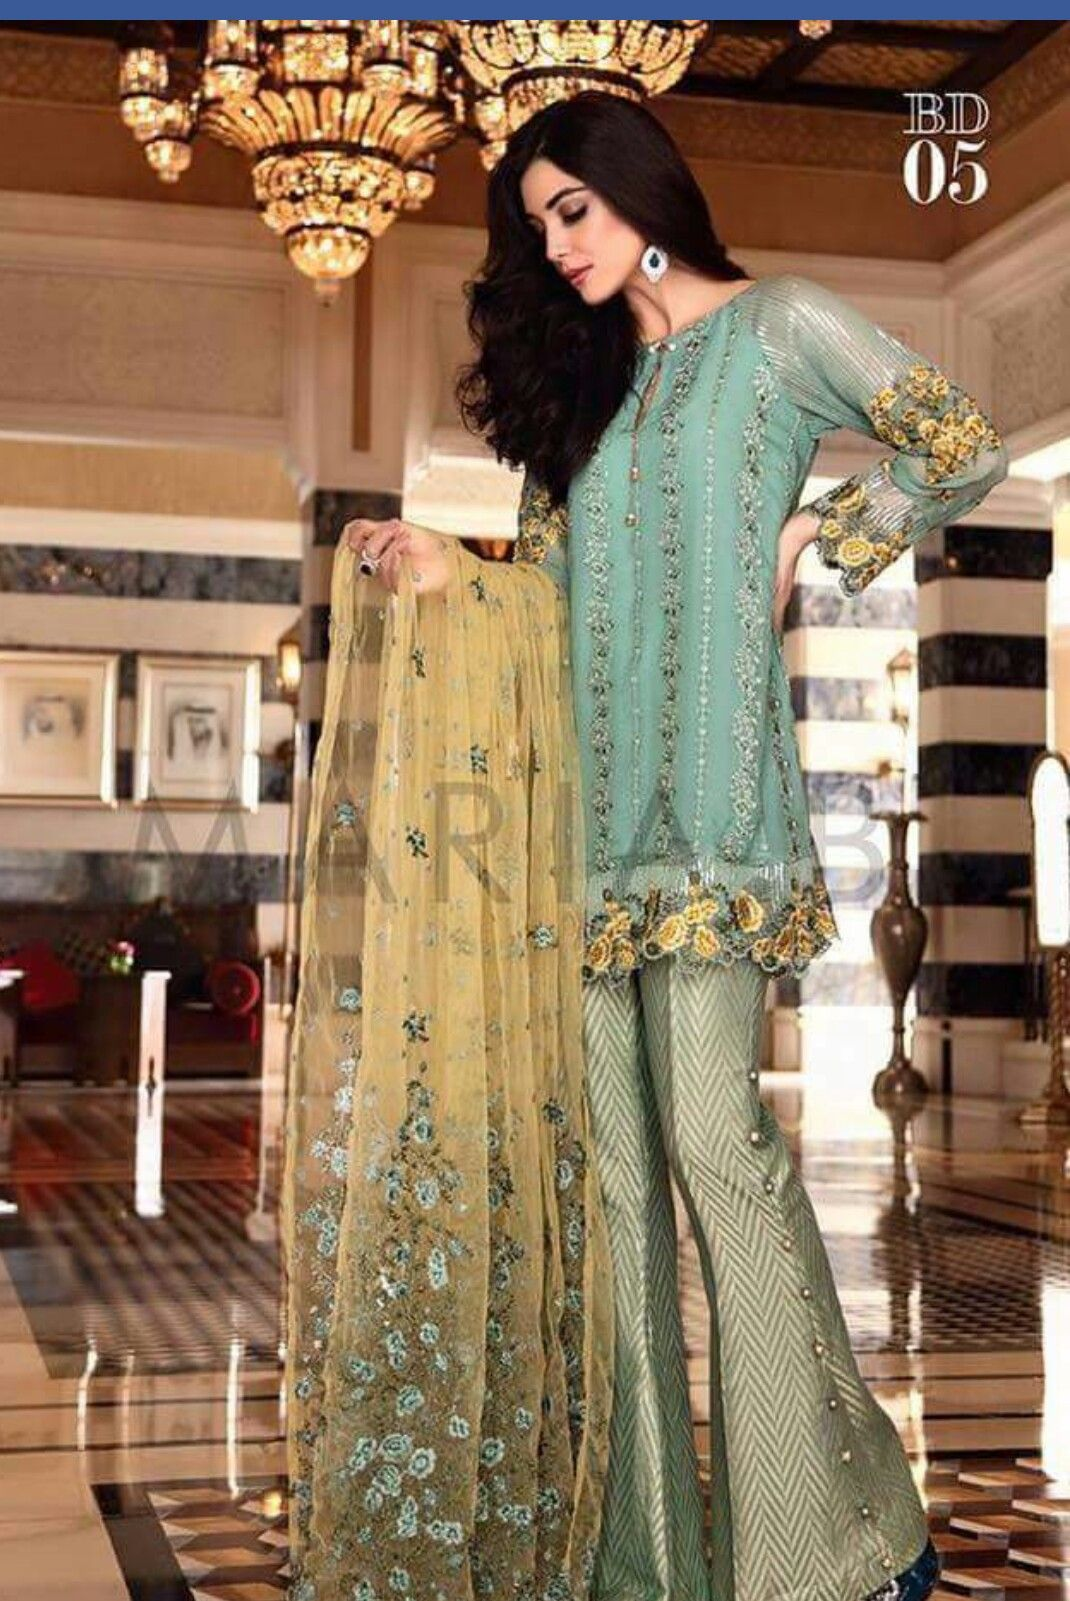 e2b3b9b680 Pakistani designer Maria b short shirt with bell bottom trouser ...